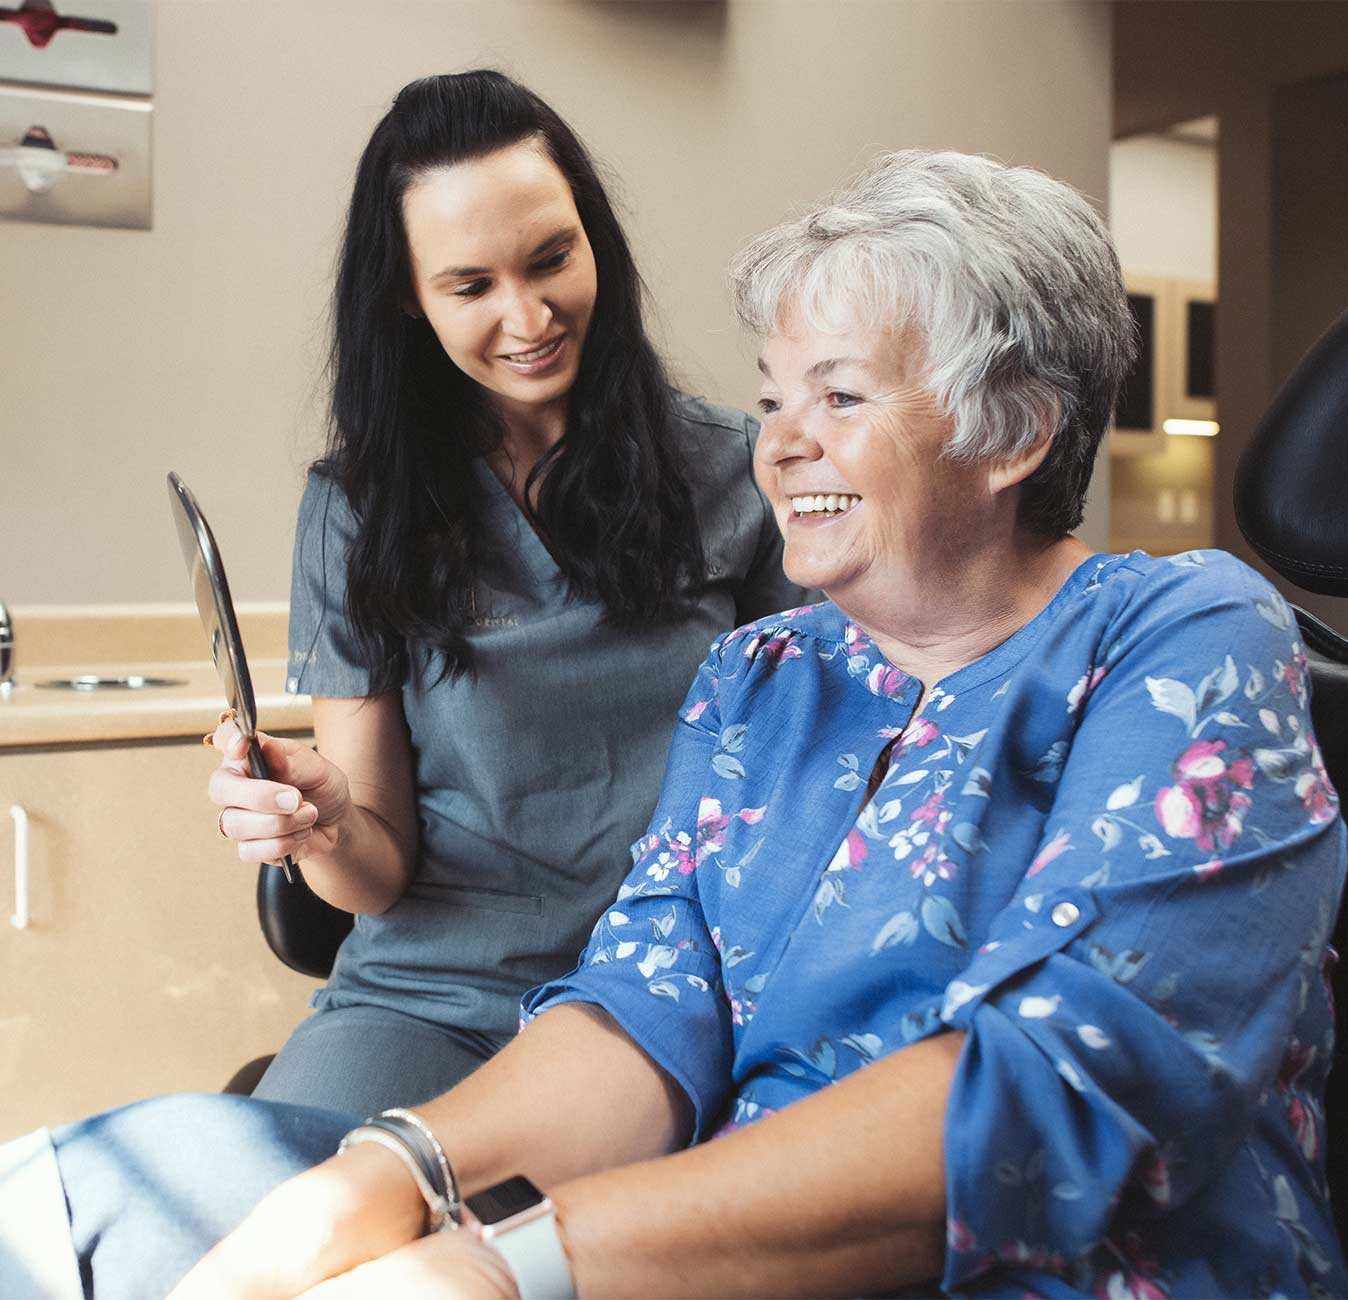 Photo of a team member holding up a mirror for a patient to see herself in